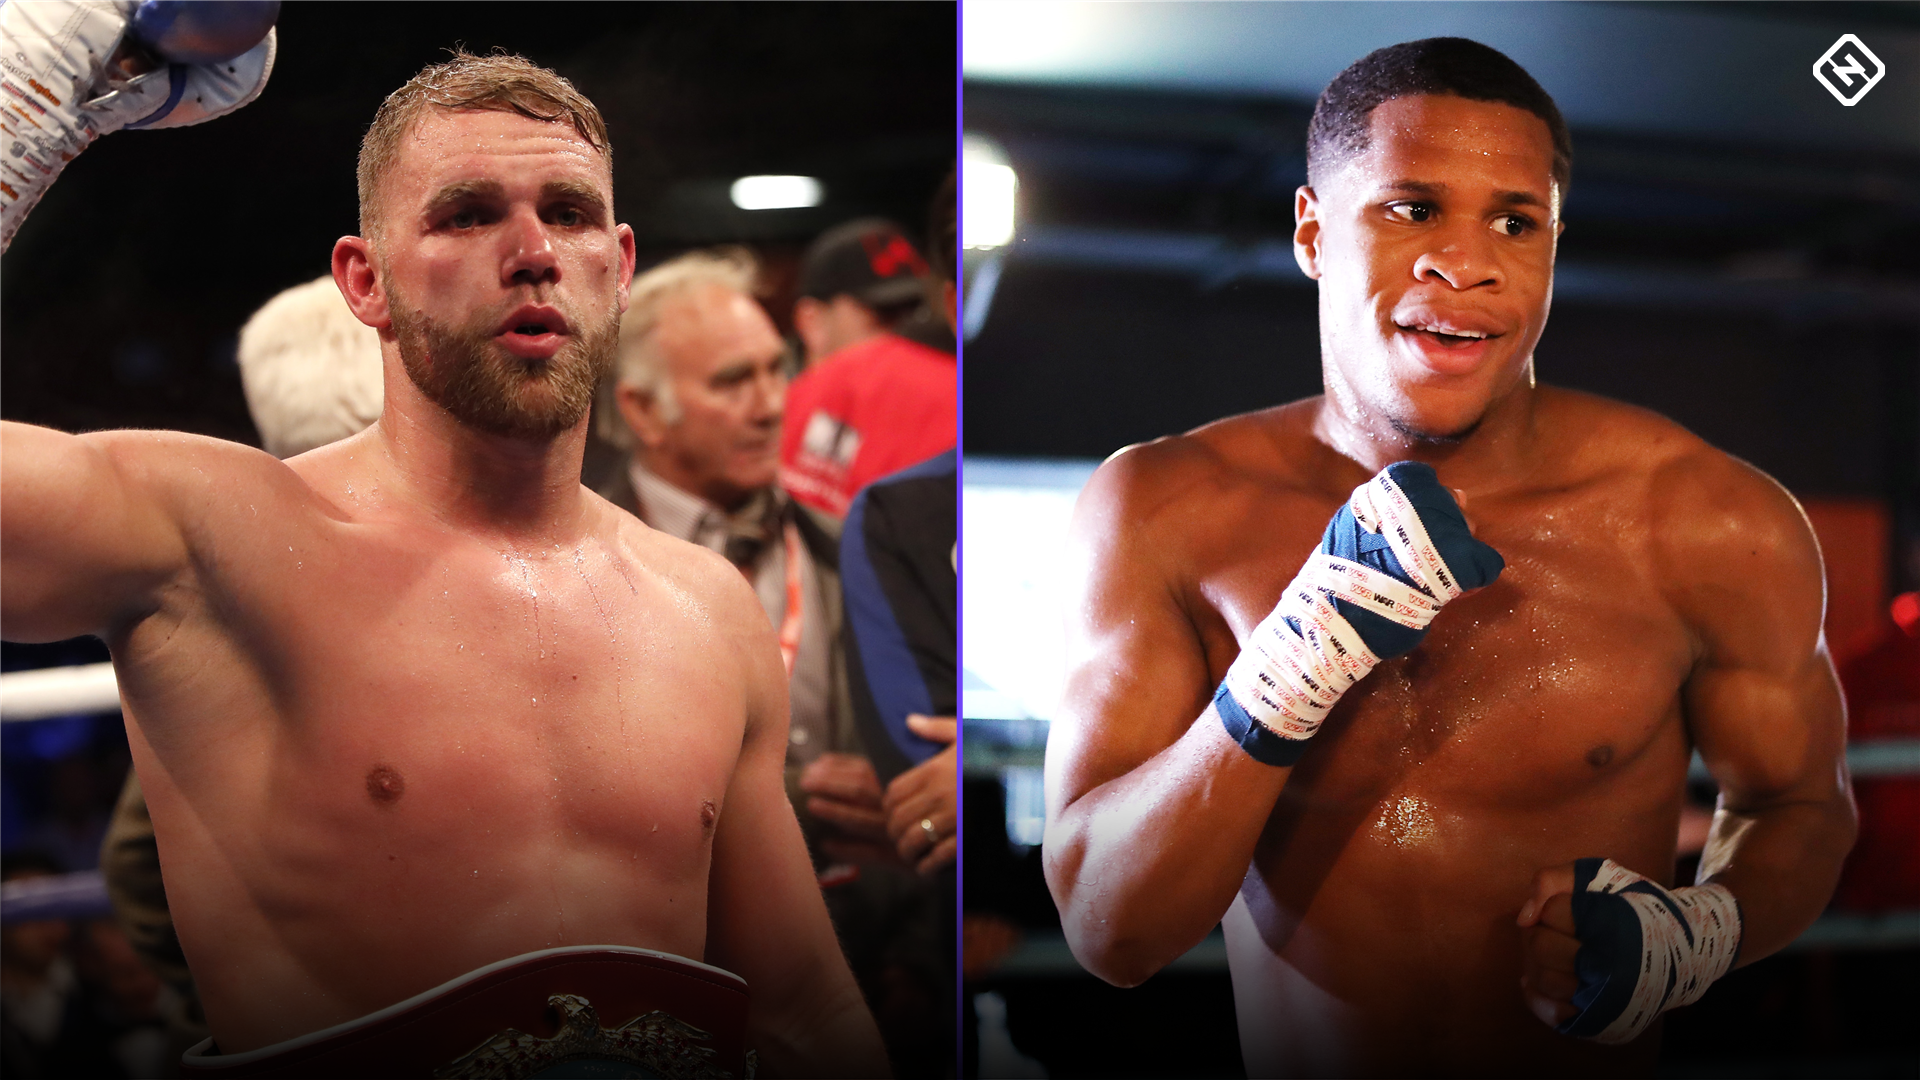 Logan Paul vs KSI 2 cartelera: Cómo ver peleas de Devin Haney, Billy Joe Saunders en DAZN 2